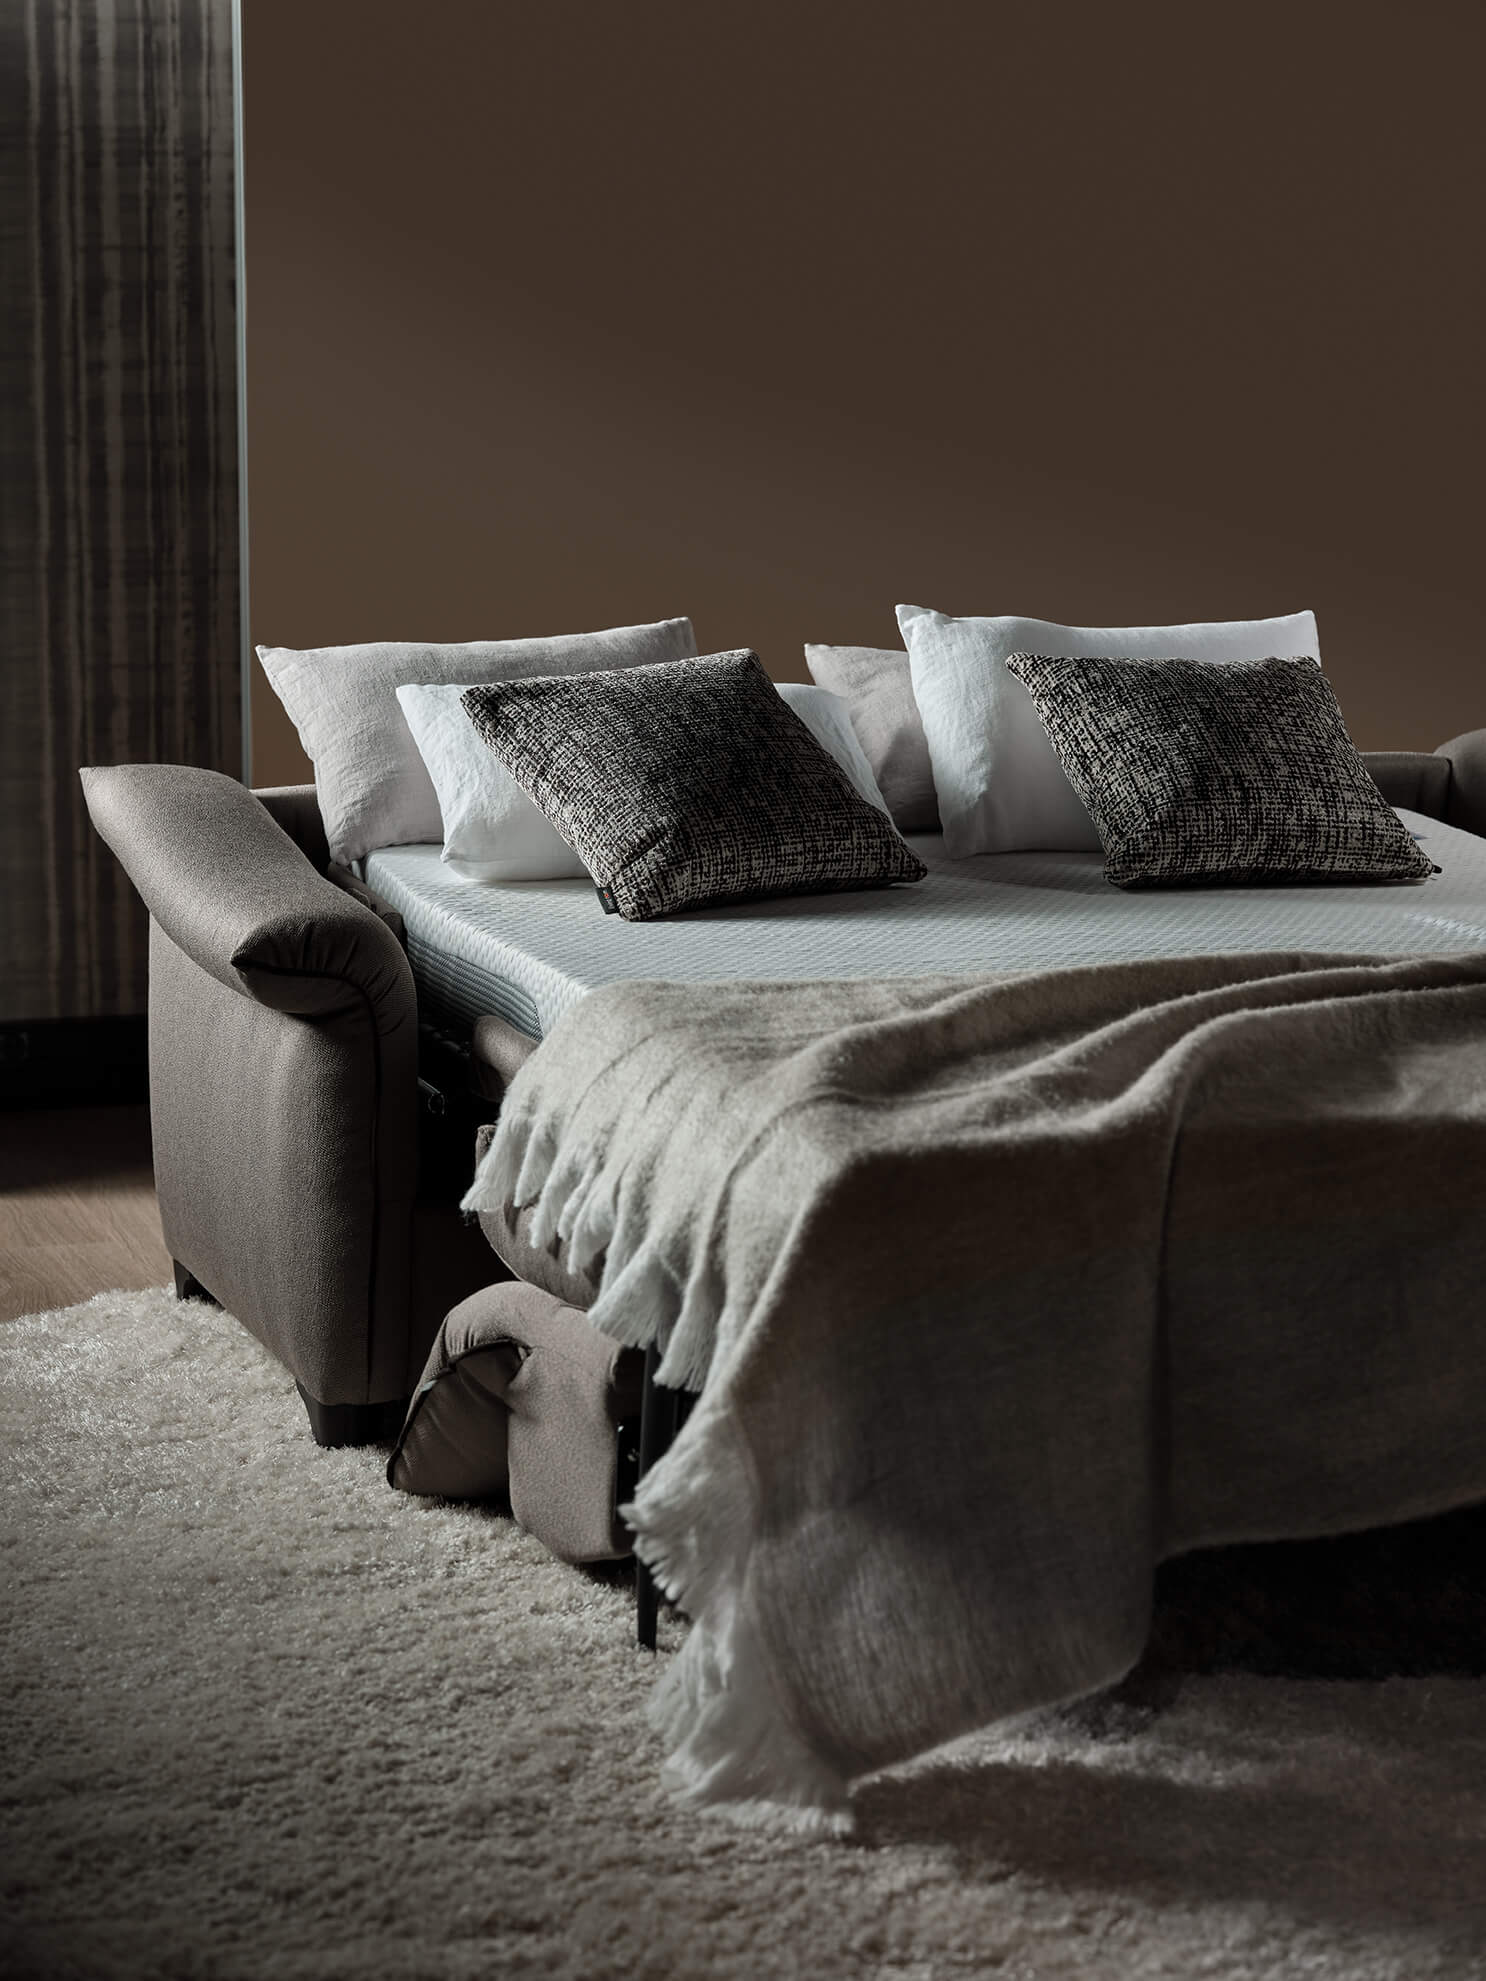 Canapé-lit Galaxio, tissu Unique Taupe, Living Rom (Canapé convertible)